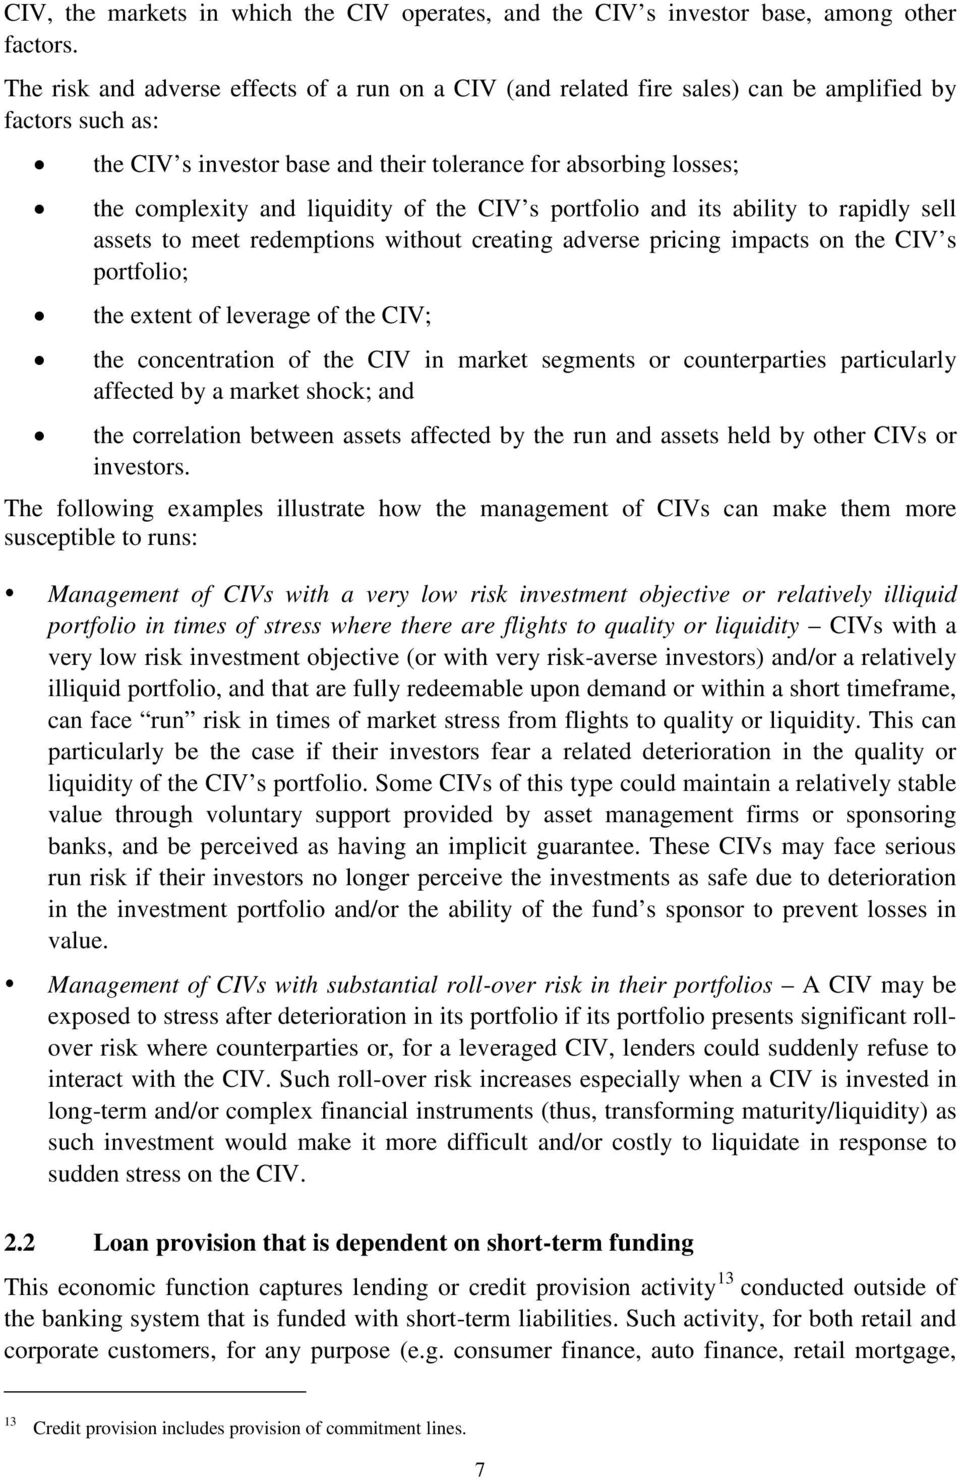 liquidity of the CIV s portfolio and its ability to rapidly sell assets to meet redemptions without creating adverse pricing impacts on the CIV s portfolio; the extent of leverage of the CIV; the